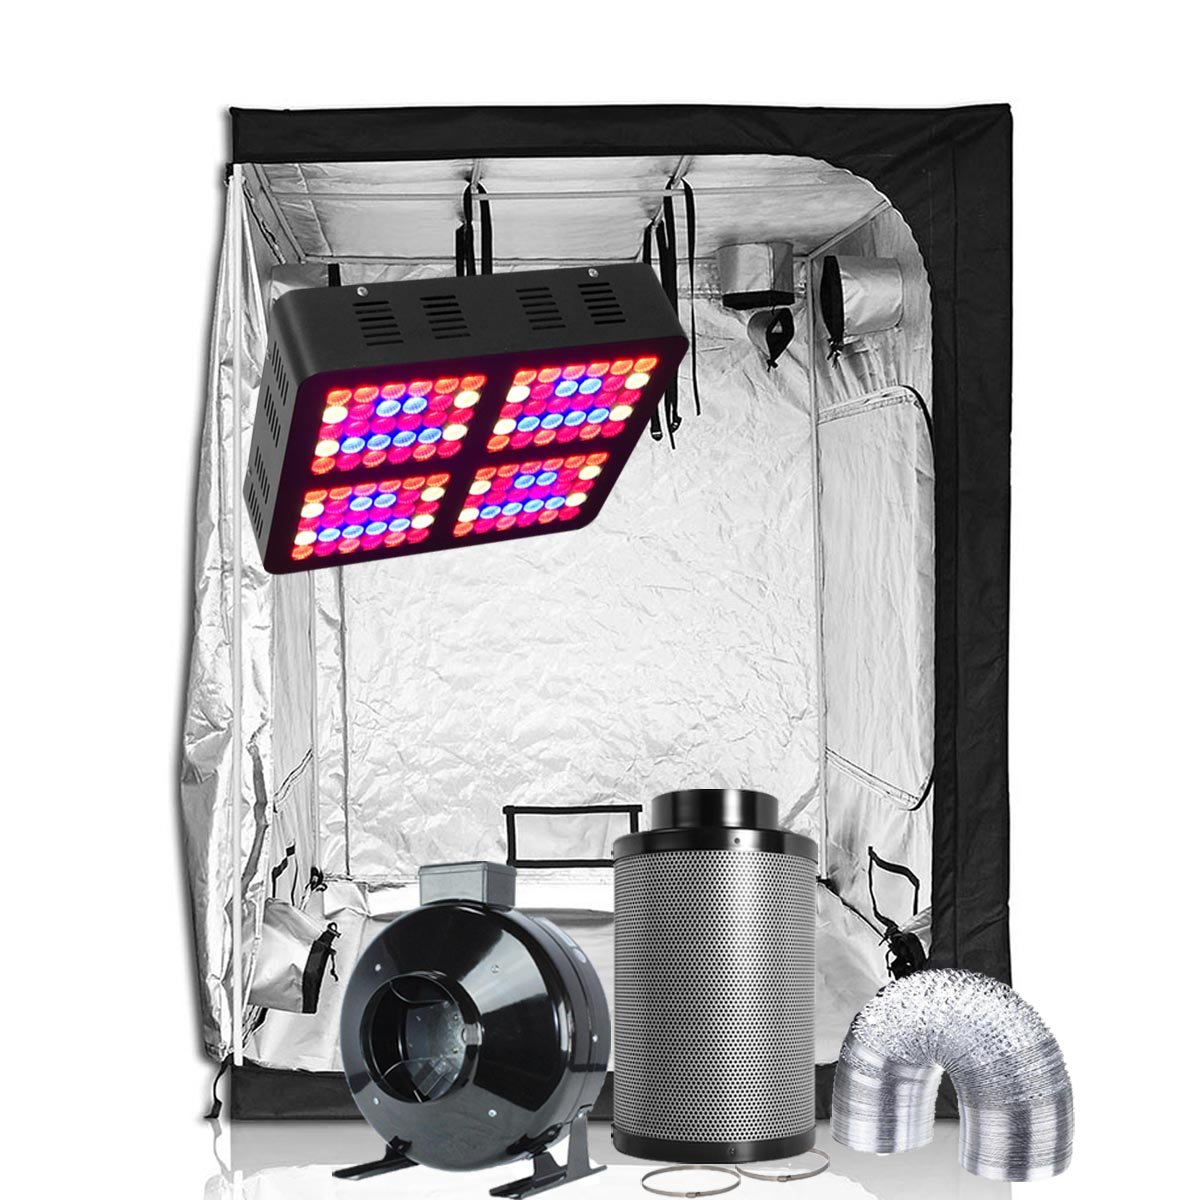 Oppolite LED Grow Tent Kit Complete Package LED 600W Grow Light Kit +6'' Fan Filter Ventilation Kit +60''X60''X80'' Grow Tent Setup Hydroponics Indoor Plants Growing System (LED600W+60''X60''X80''+6'')